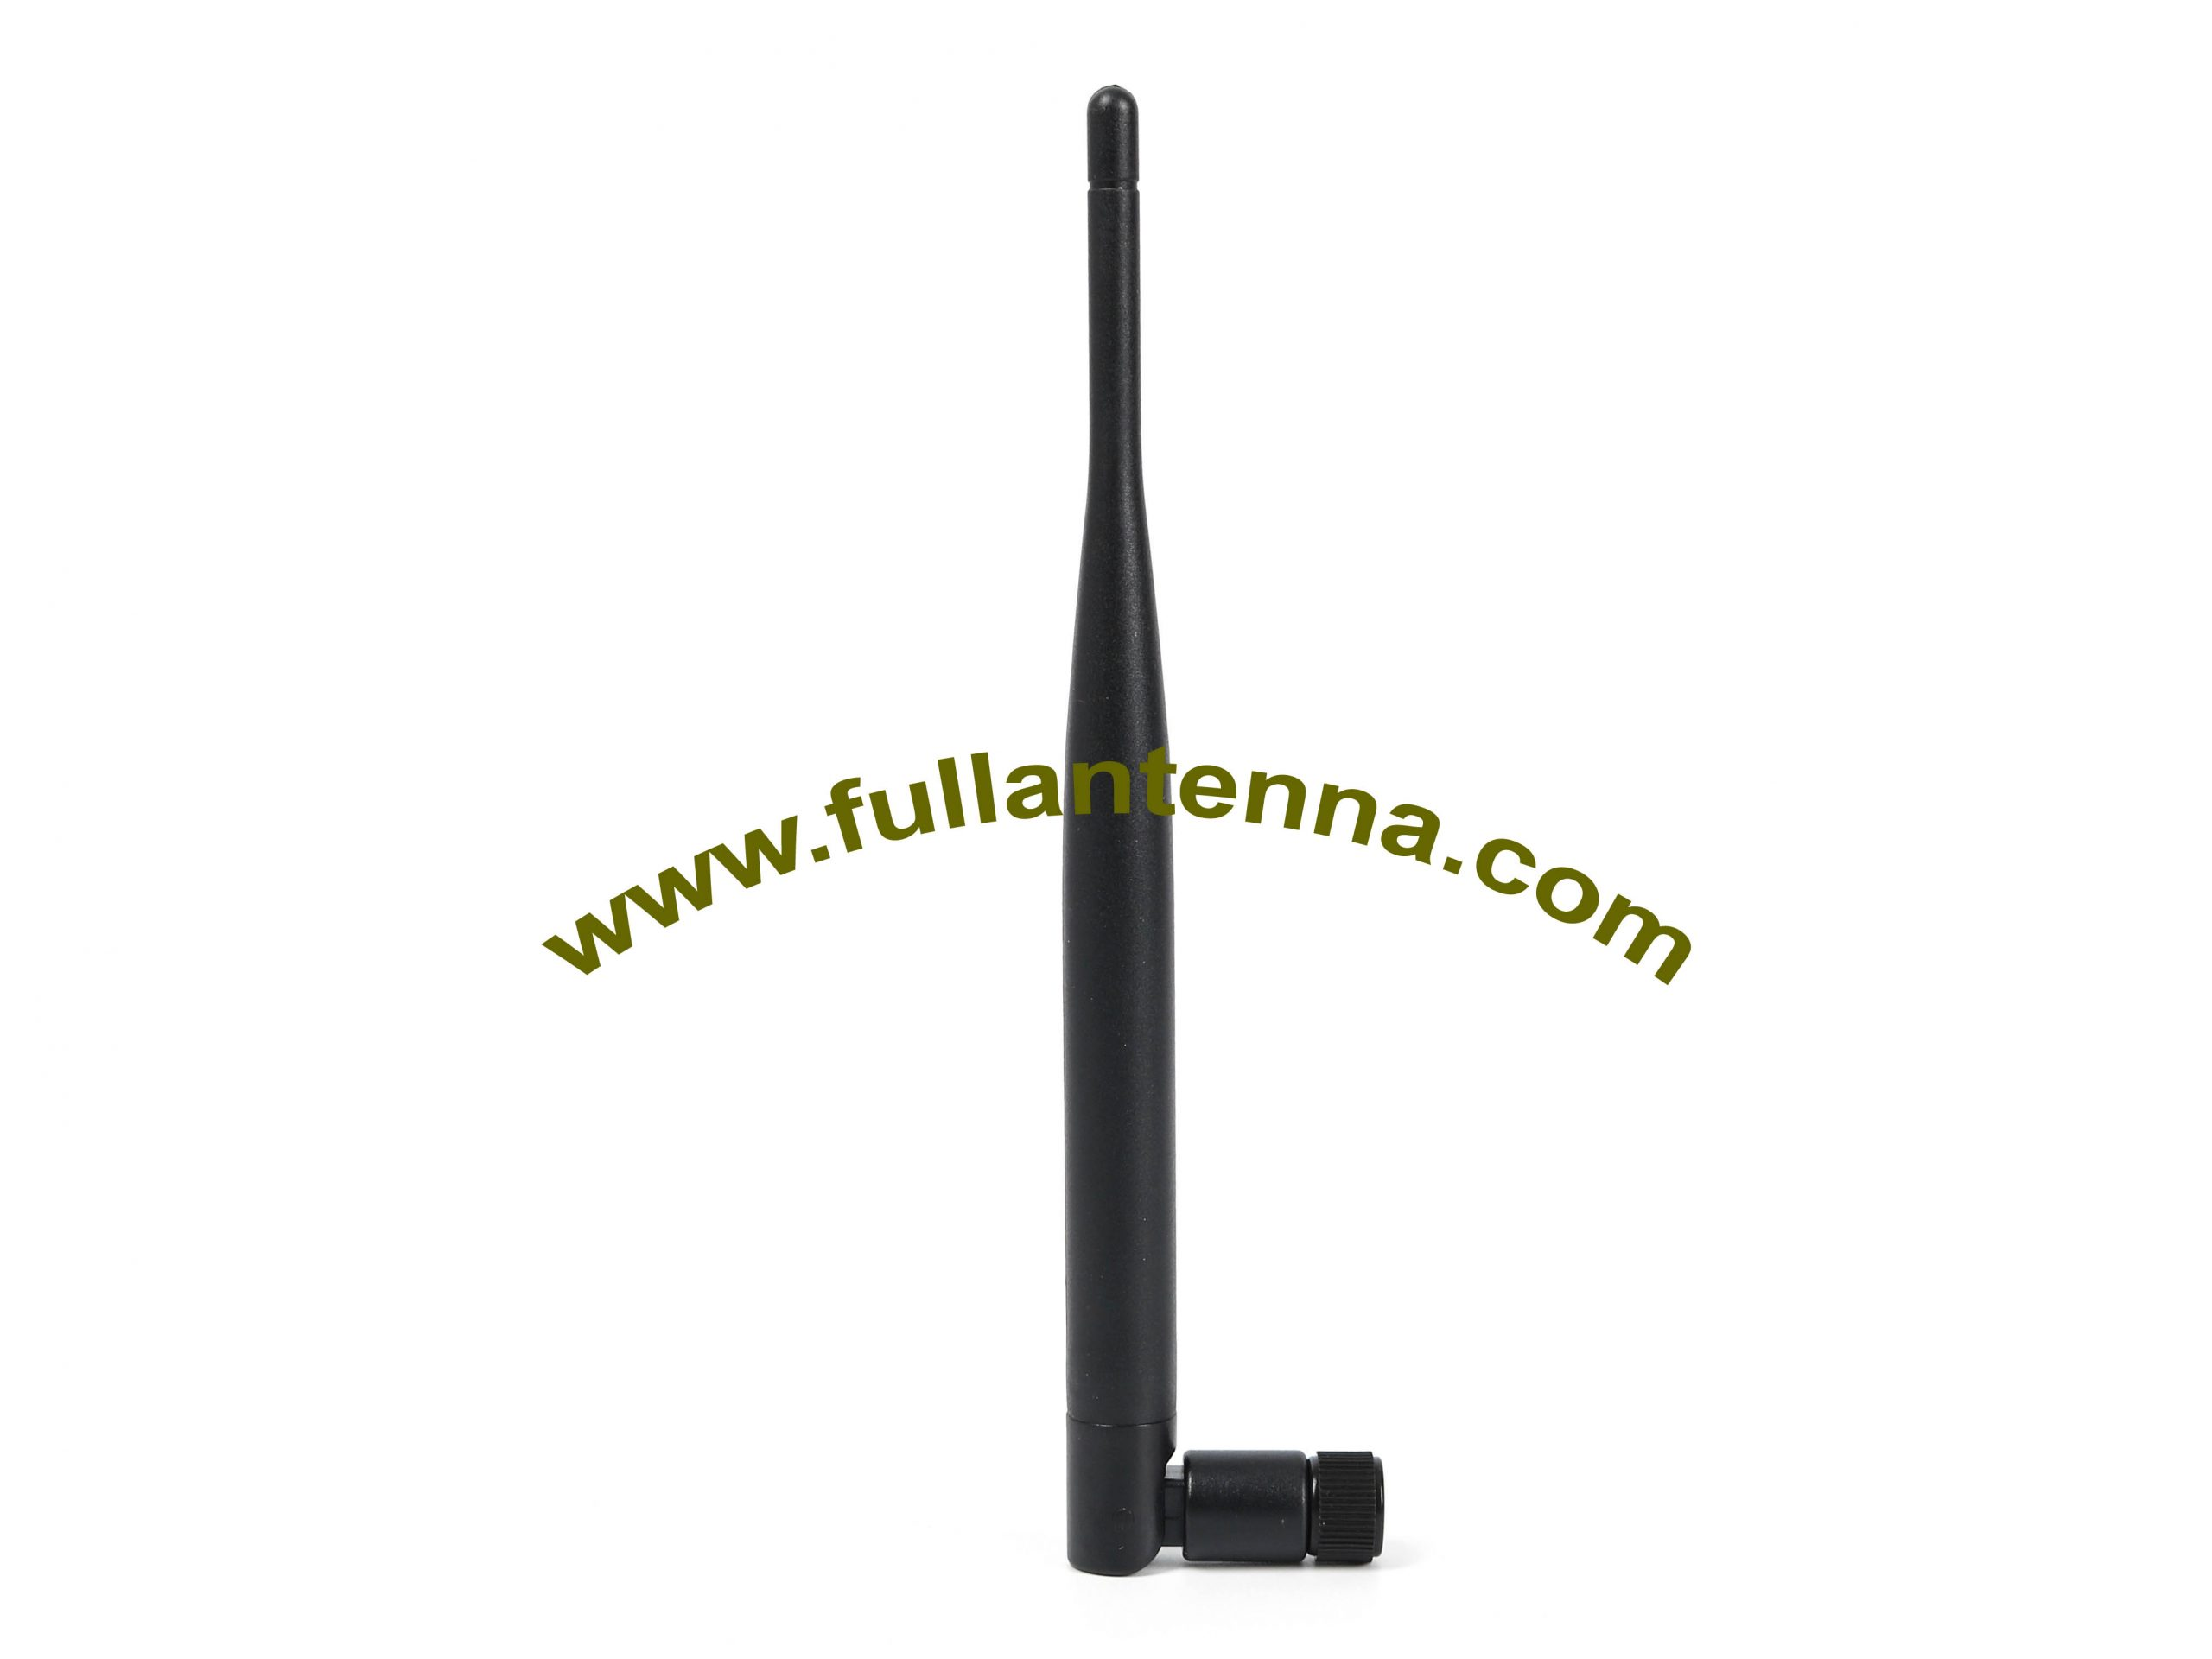 P/N:FA3G.0304,3G Rubber Antenna,3G rubber whip antenna  with SMA or FME connector